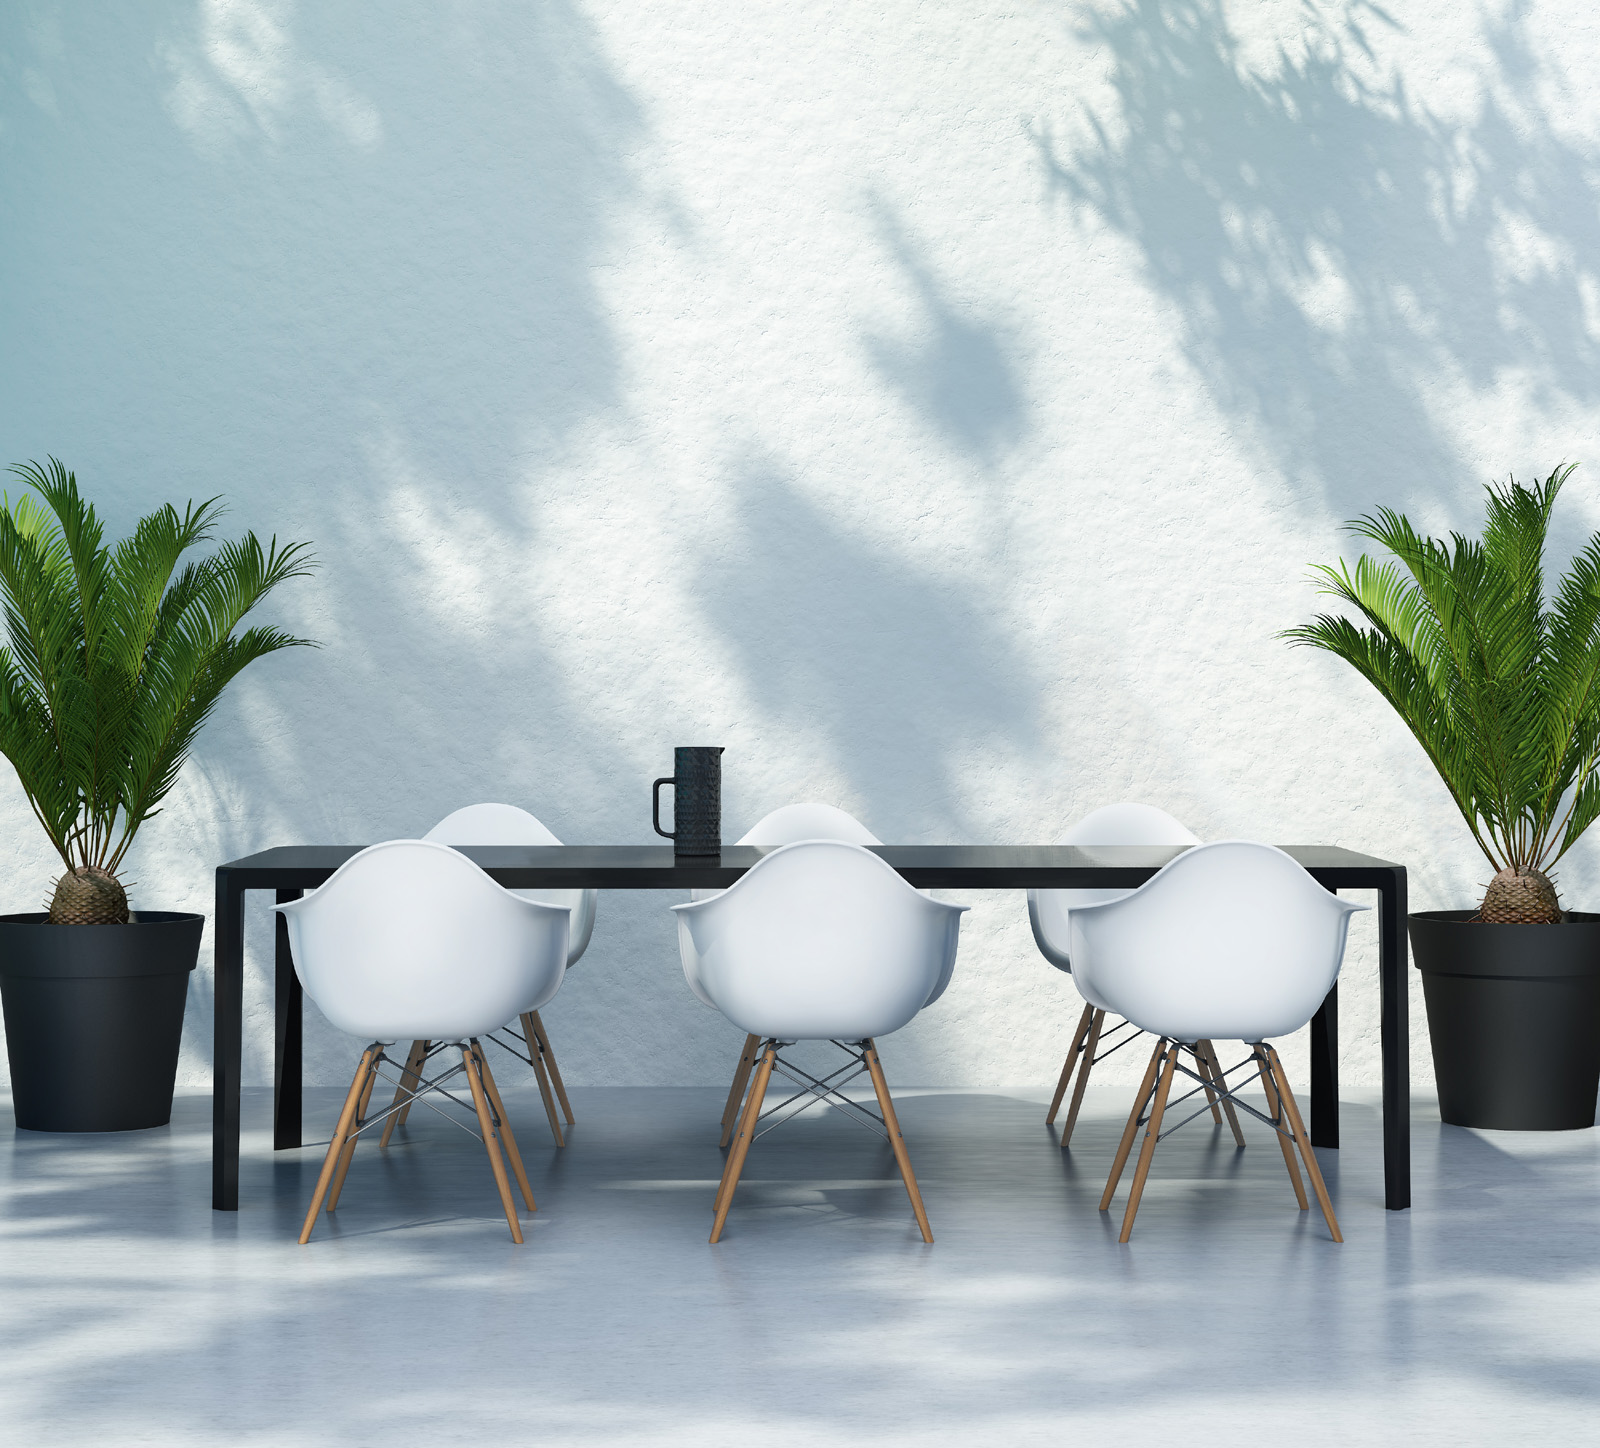 Placing tables and chairs and green plants 51732